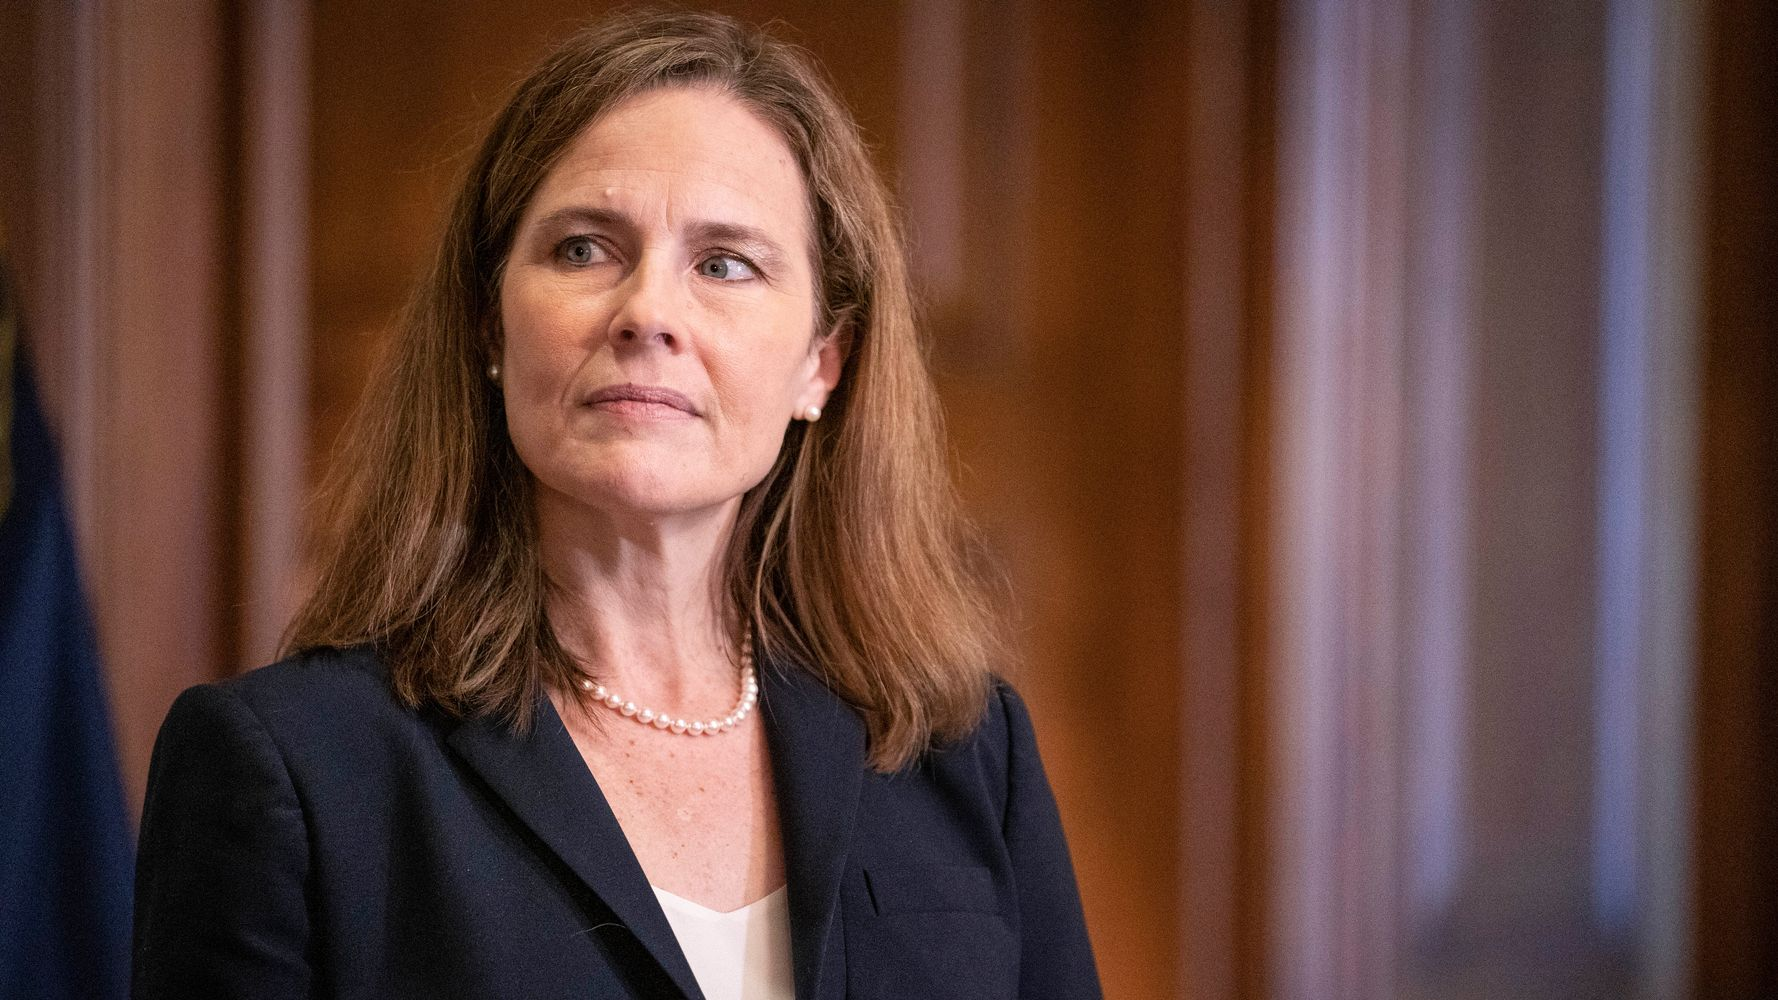 Senate Advances Amy Coney Barrett's Supreme Court Nomination